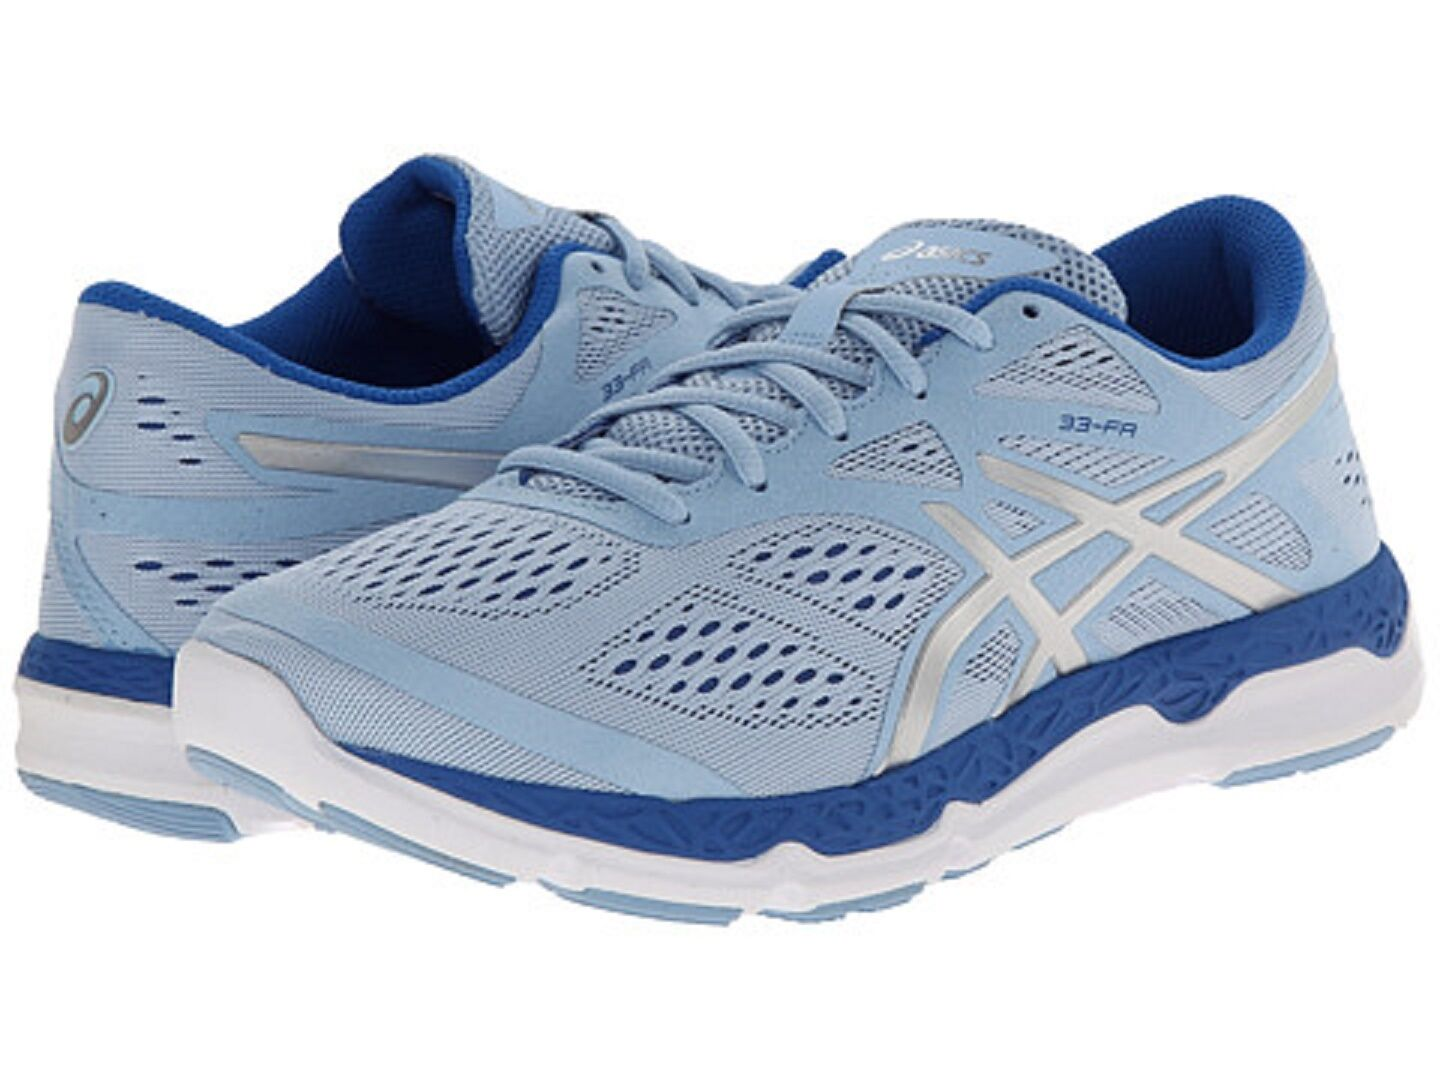 ASICS T583N.4491 33-FA Wmn's (M) Powder-bluee Mesh Synthetic Running shoes